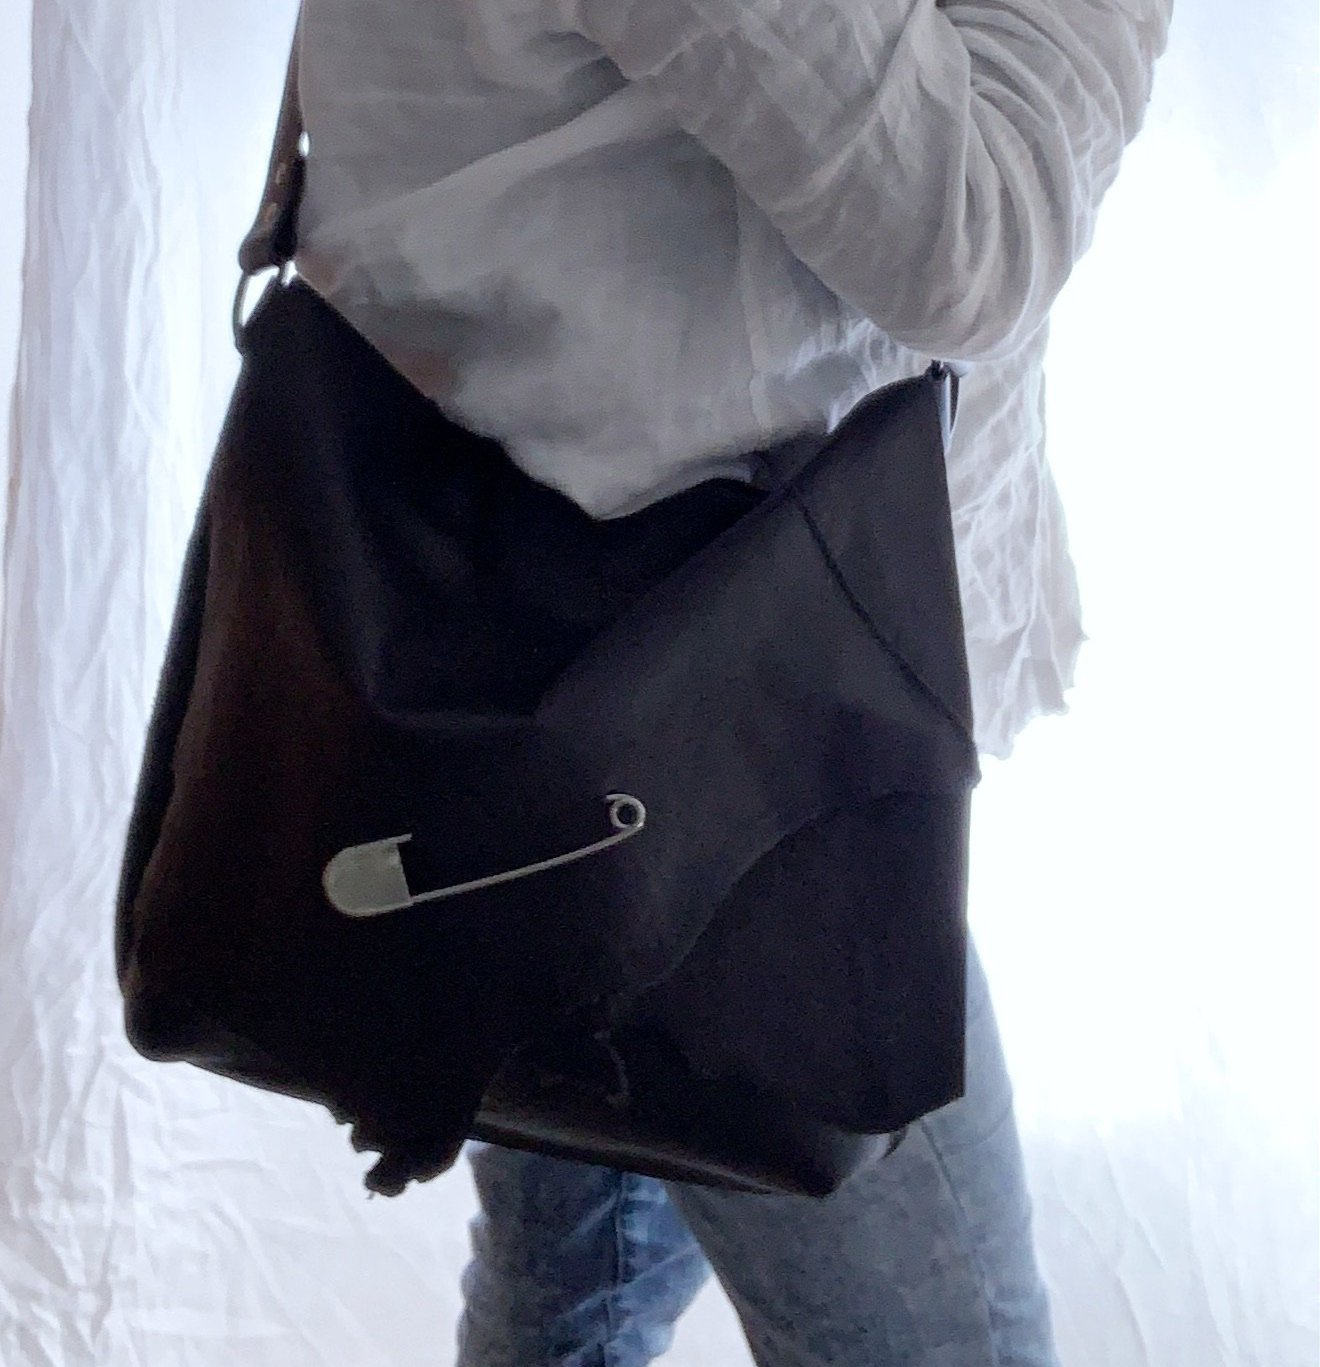 Handcrafted Black Leather Shoulder Bag - Safety Pin